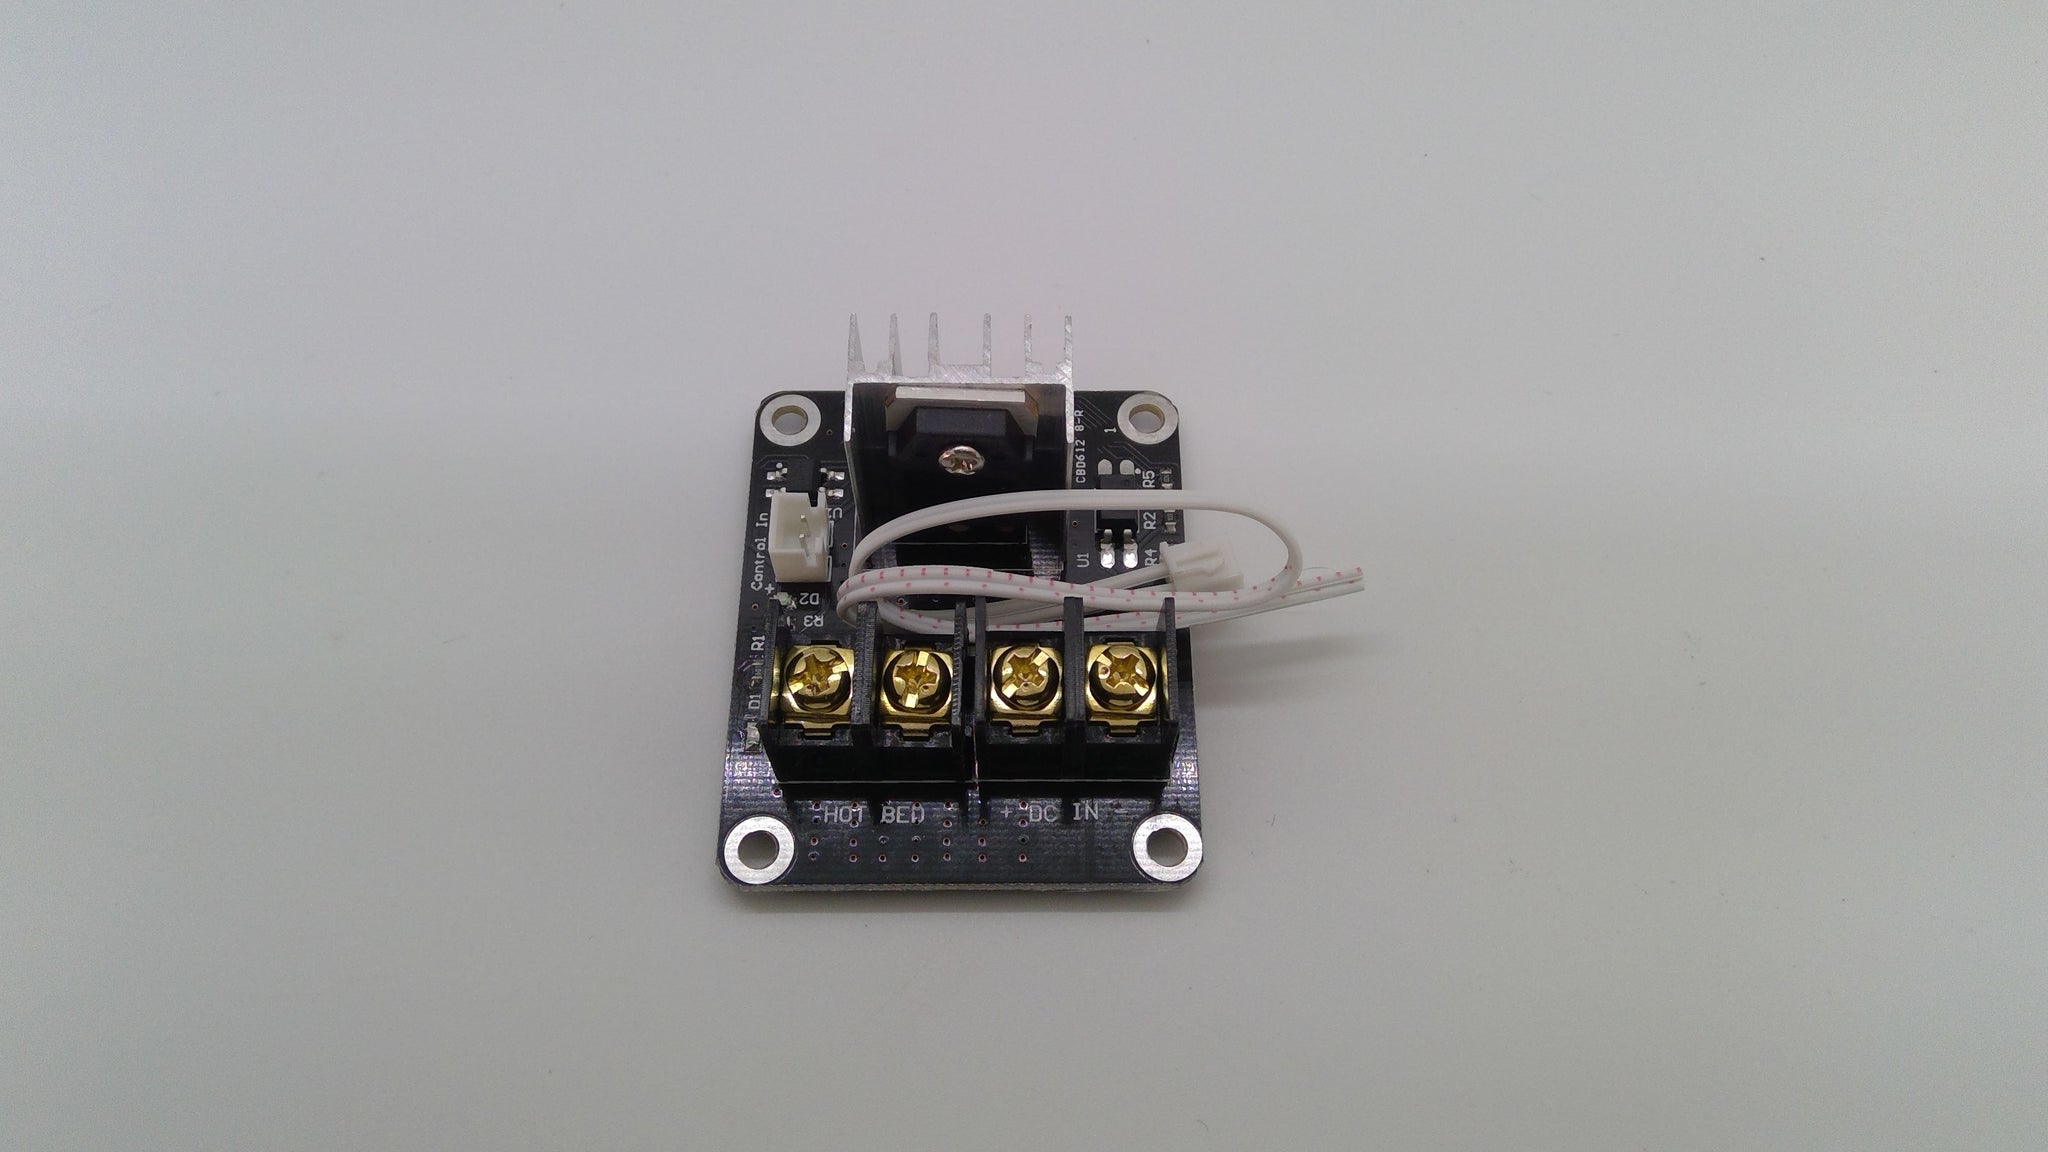 Heated Bed Mosfet Module for 12 or 24 volts